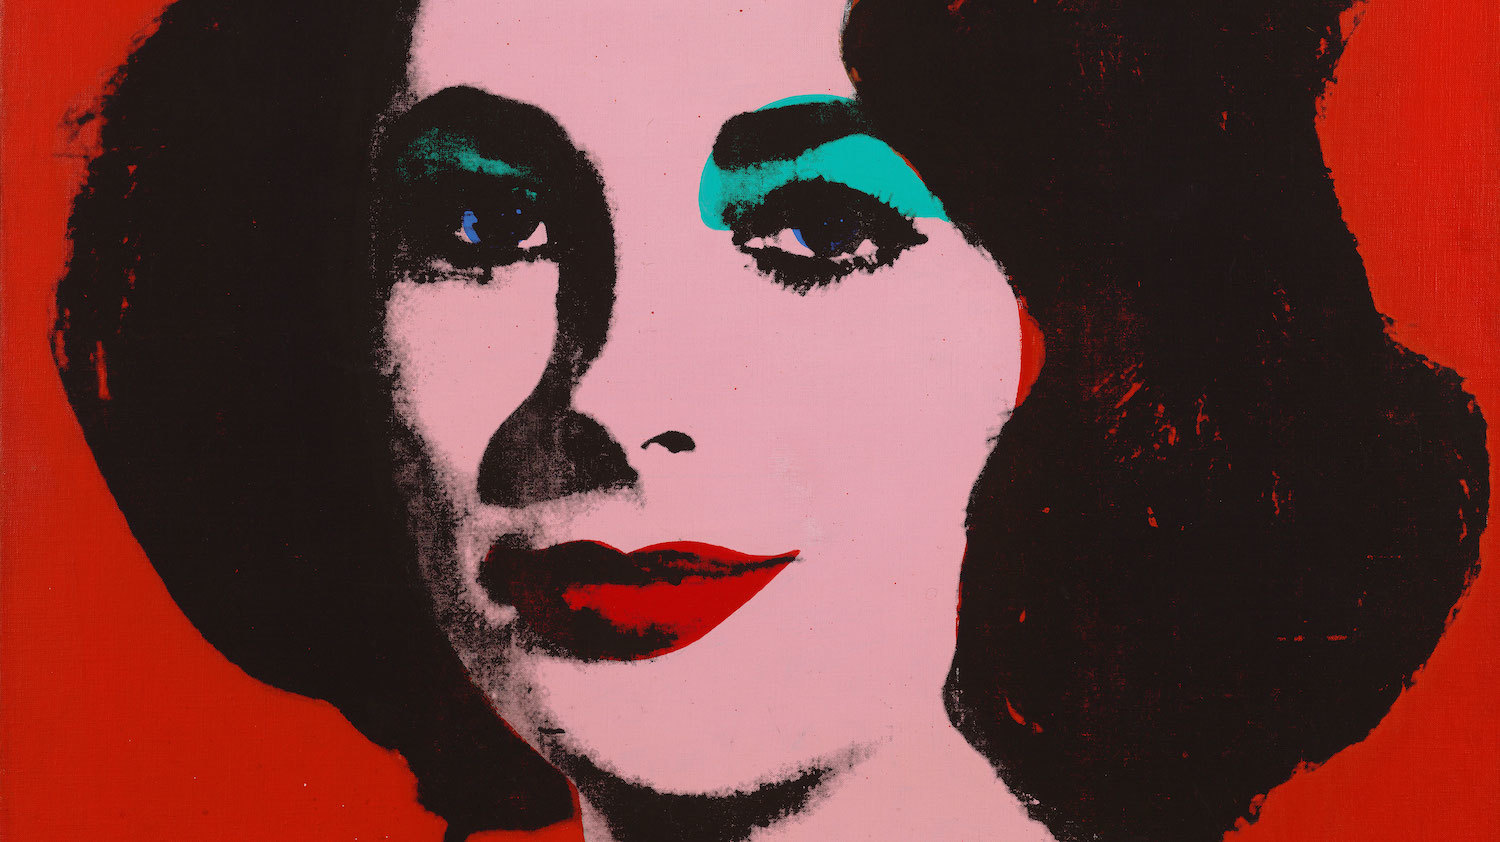 (Andy Warhol, 'Liz #6' (détail), 1963 / © The Andy Warhol Foundation for the Visual Arts, Inc. / Artists Rights Society (ARS), New York / ©SFMOMA / Photo Ben Blackwell)